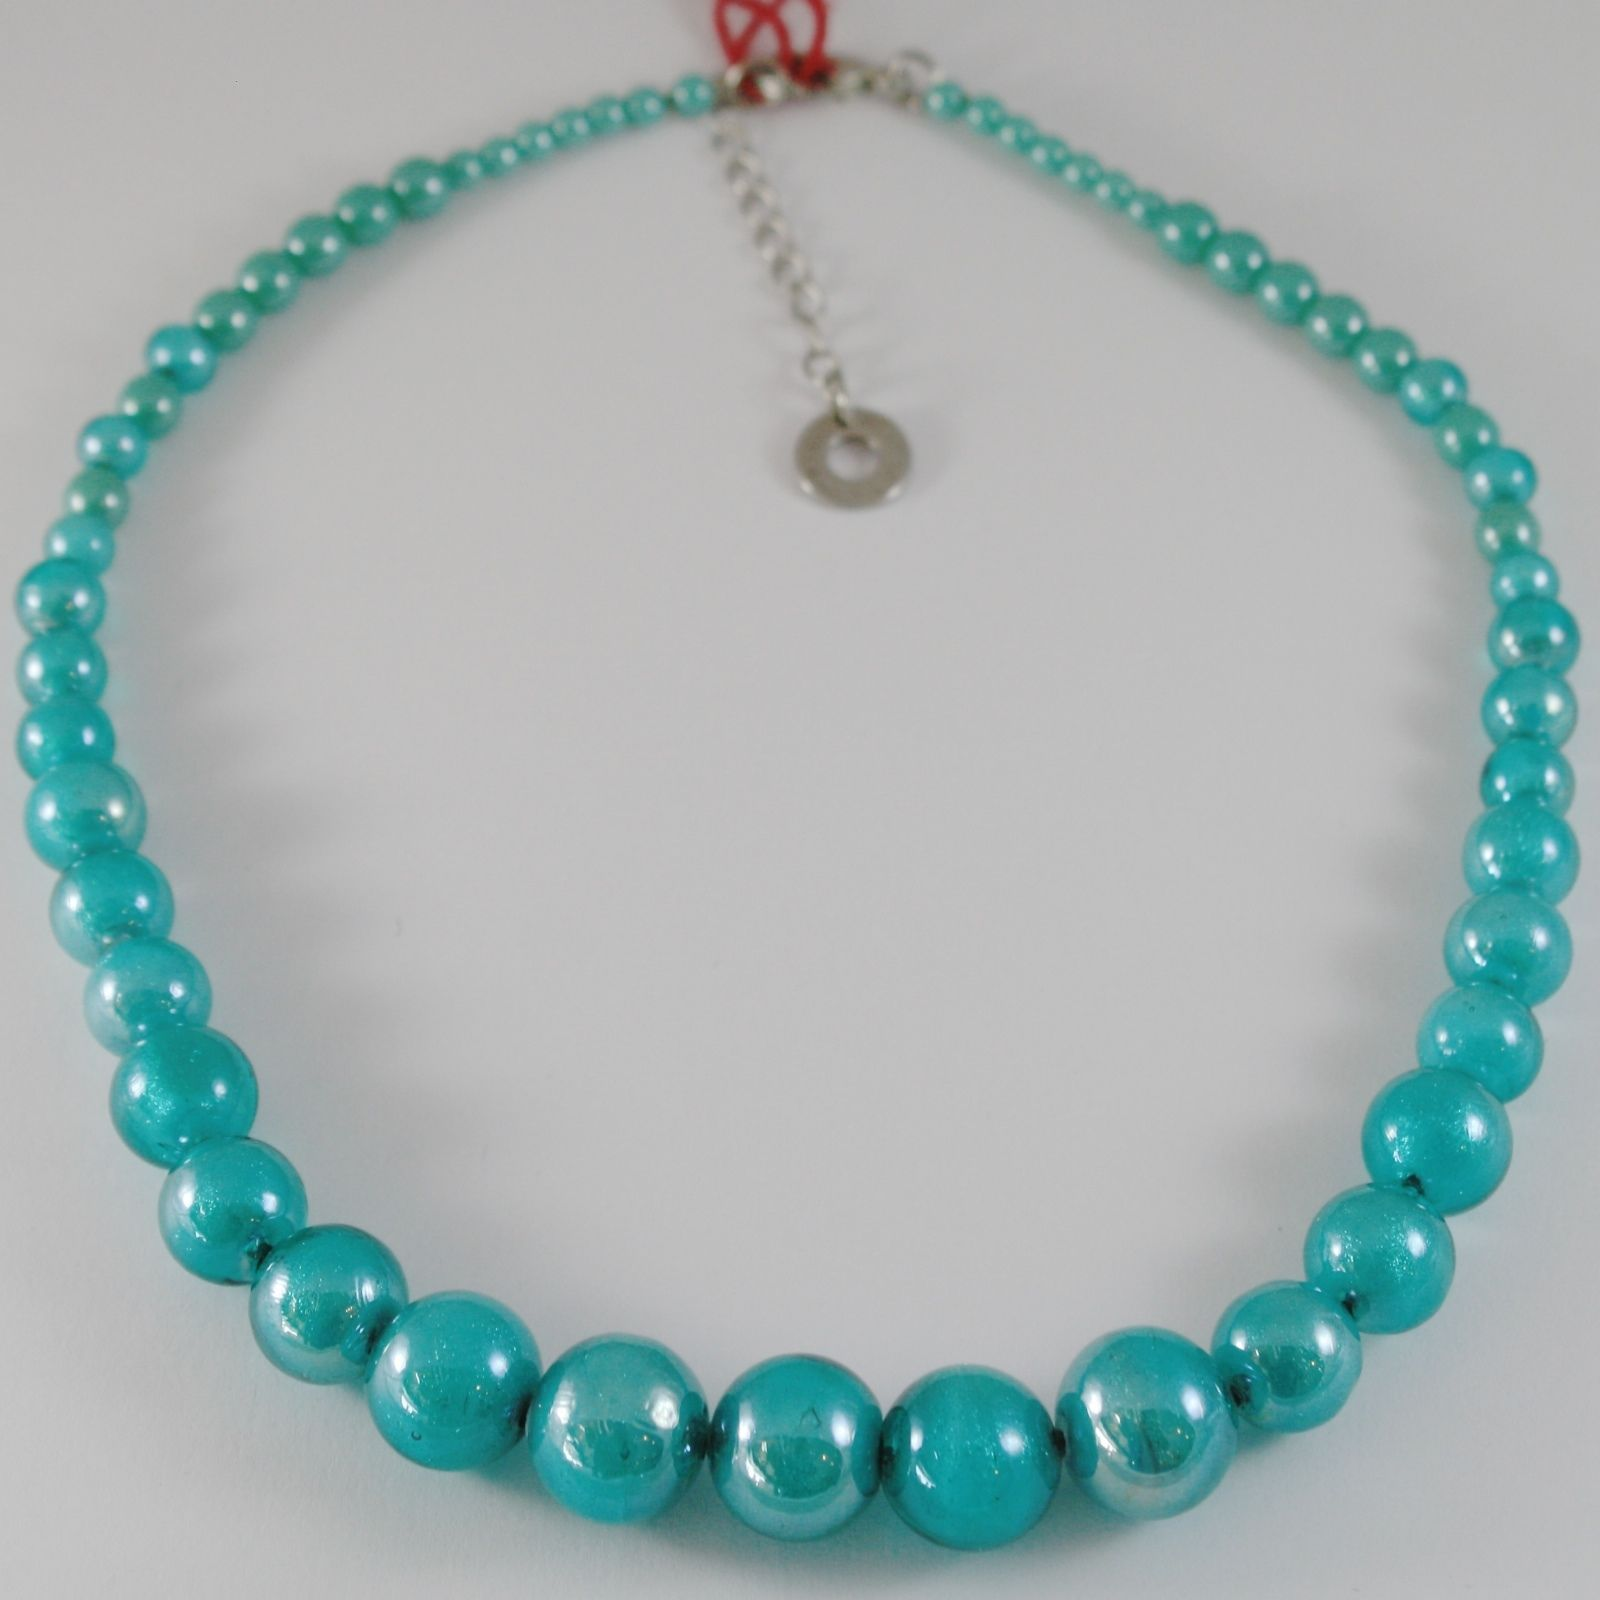 ANTICA MURRINA VENEZIA TURQUOISE 15 MM SPHERE NECKLACE, 50 CM, 20 INCHES